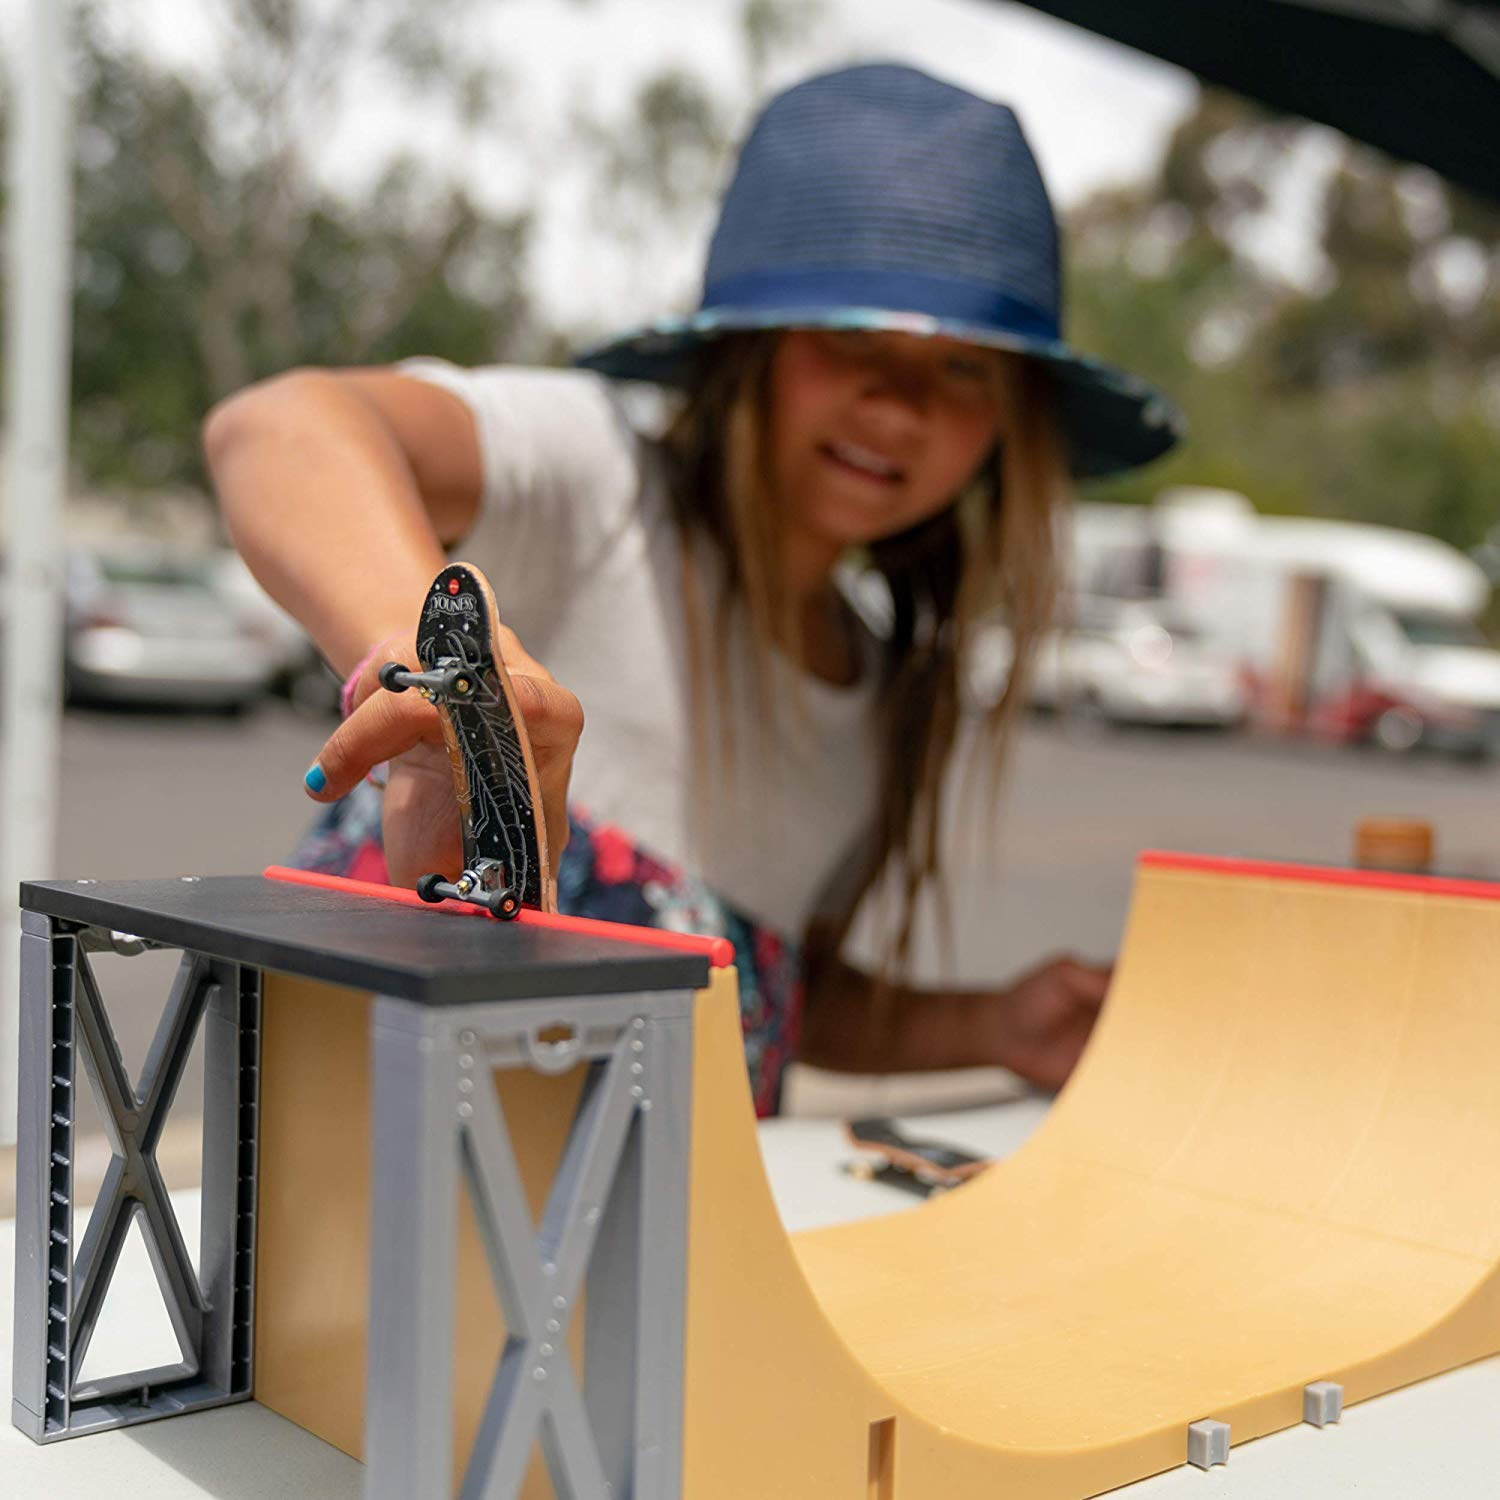 Tech Deck - Ultimate Half-Pipe Ramp and Exclusive Primitive Pro Model Finger Board, for Ages 6 and Up by Tech Deck (Image #3)